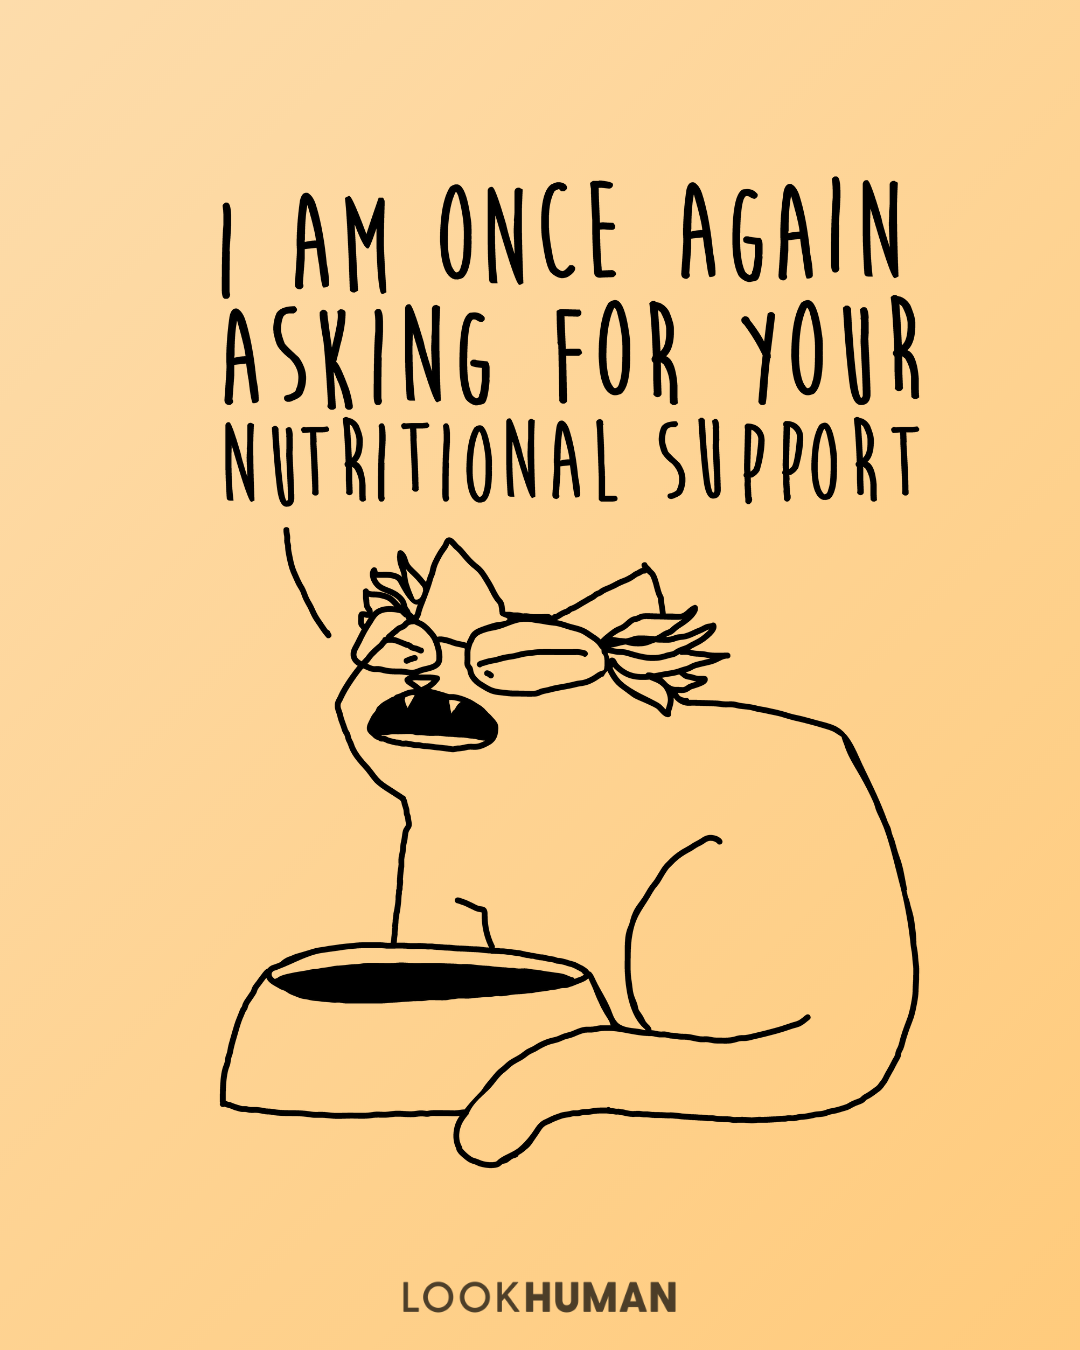 I Am Once Again Asking For Your Nutritional Support Supportive Bernie Sanders Meme Biology Humor